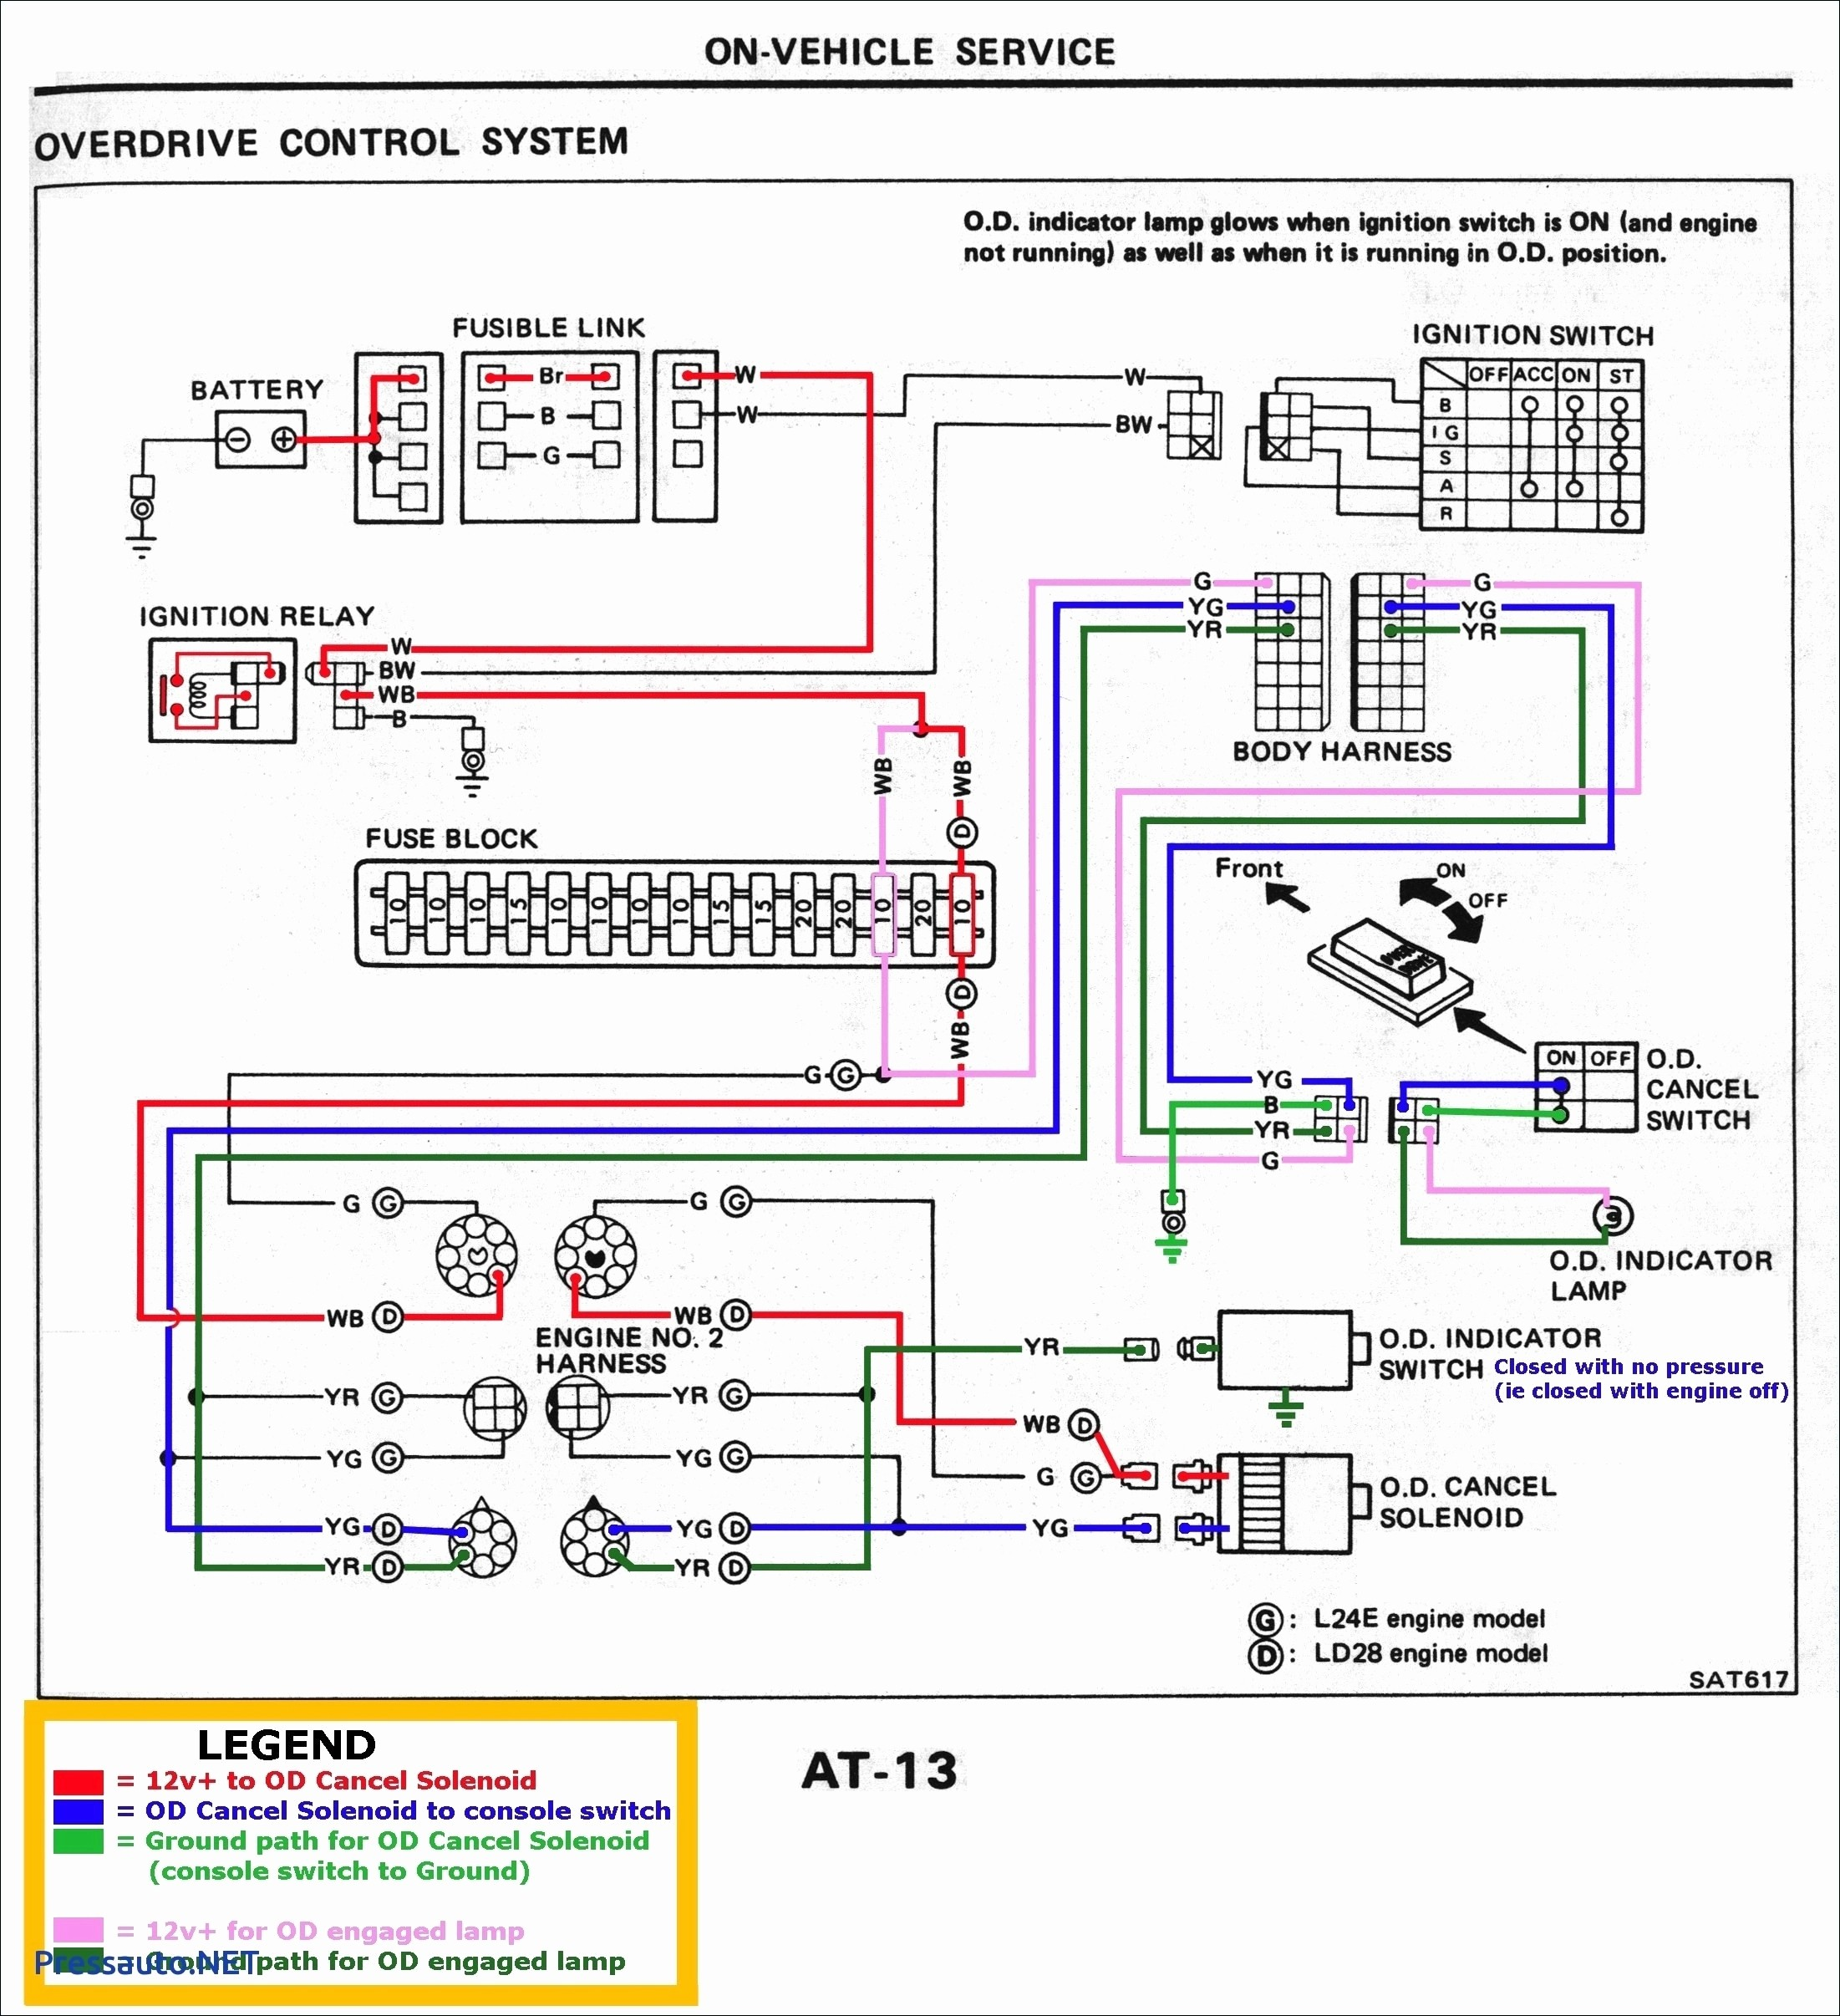 Ignition Coil Diagram 5 Pin Cdi Wiring Diagram Luxury Gy6 Cdi Wiring Diagram Unique 5 Pin Of Ignition Coil Diagram Boat Ignition Switch Wiring Diagram Wiring Diagrams